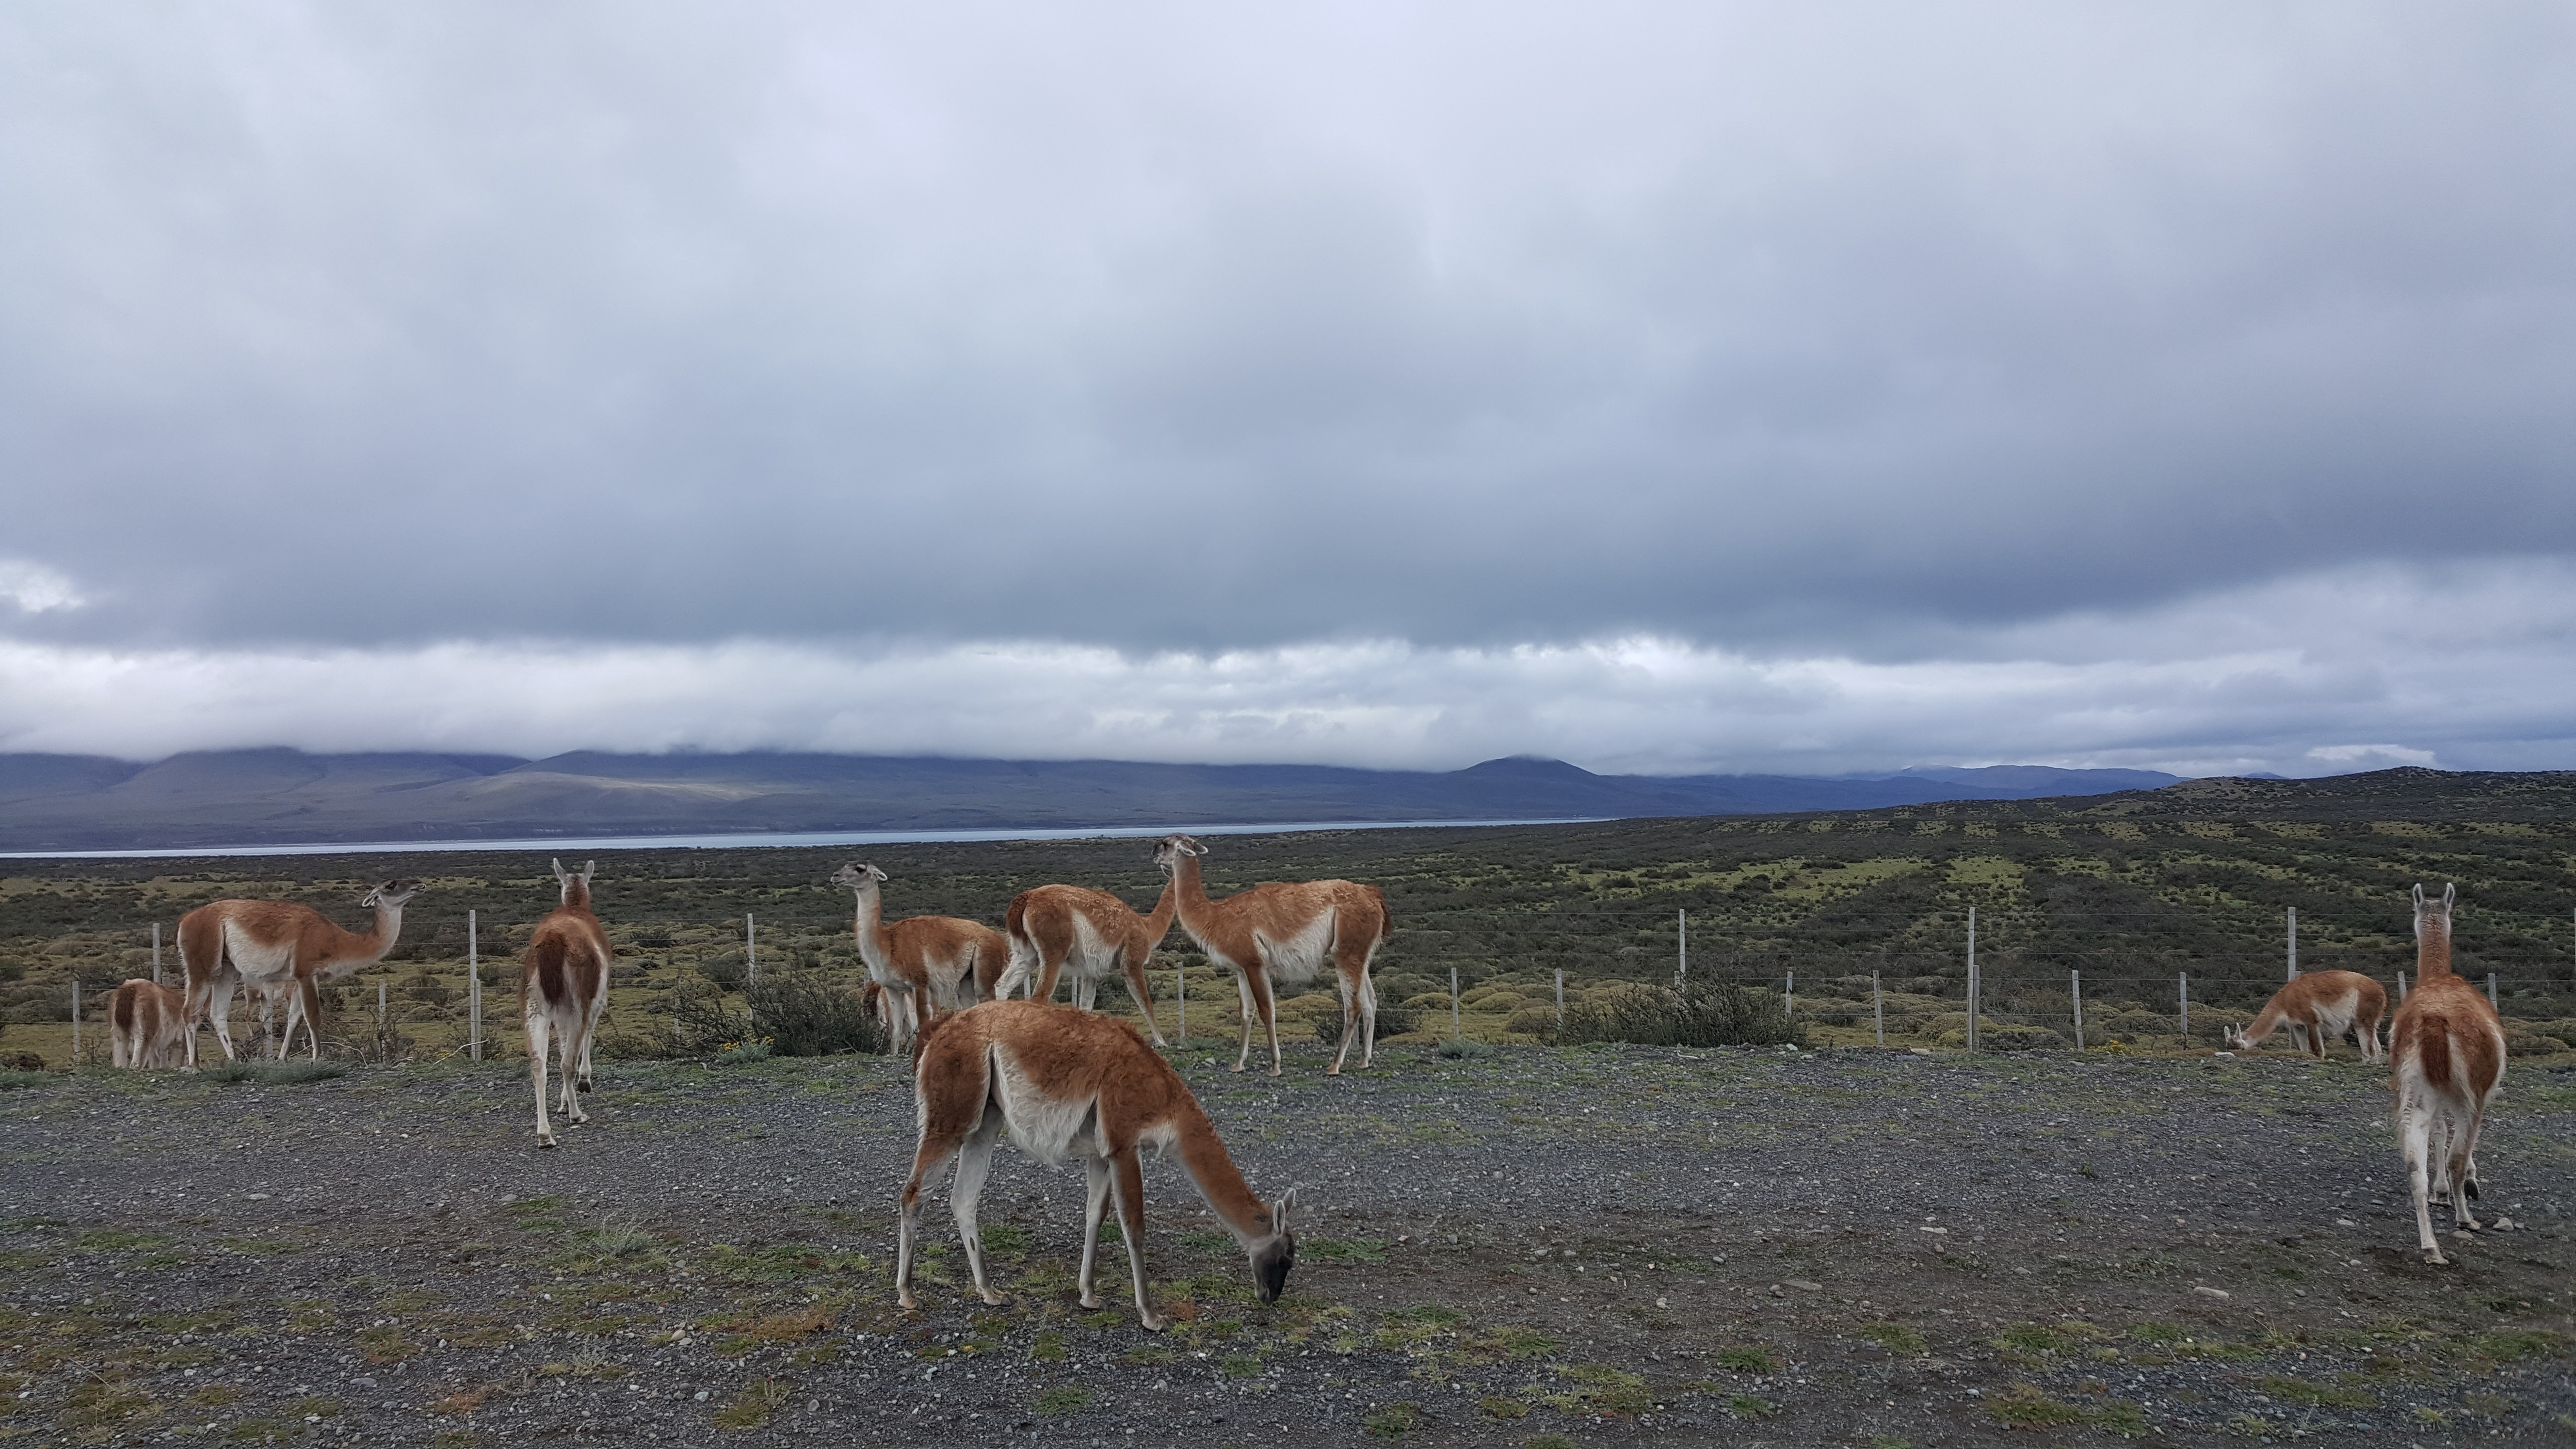 Free download high resolution image - free image free photo free stock image public domain picture -Guanaco in Torres del Paine National Park